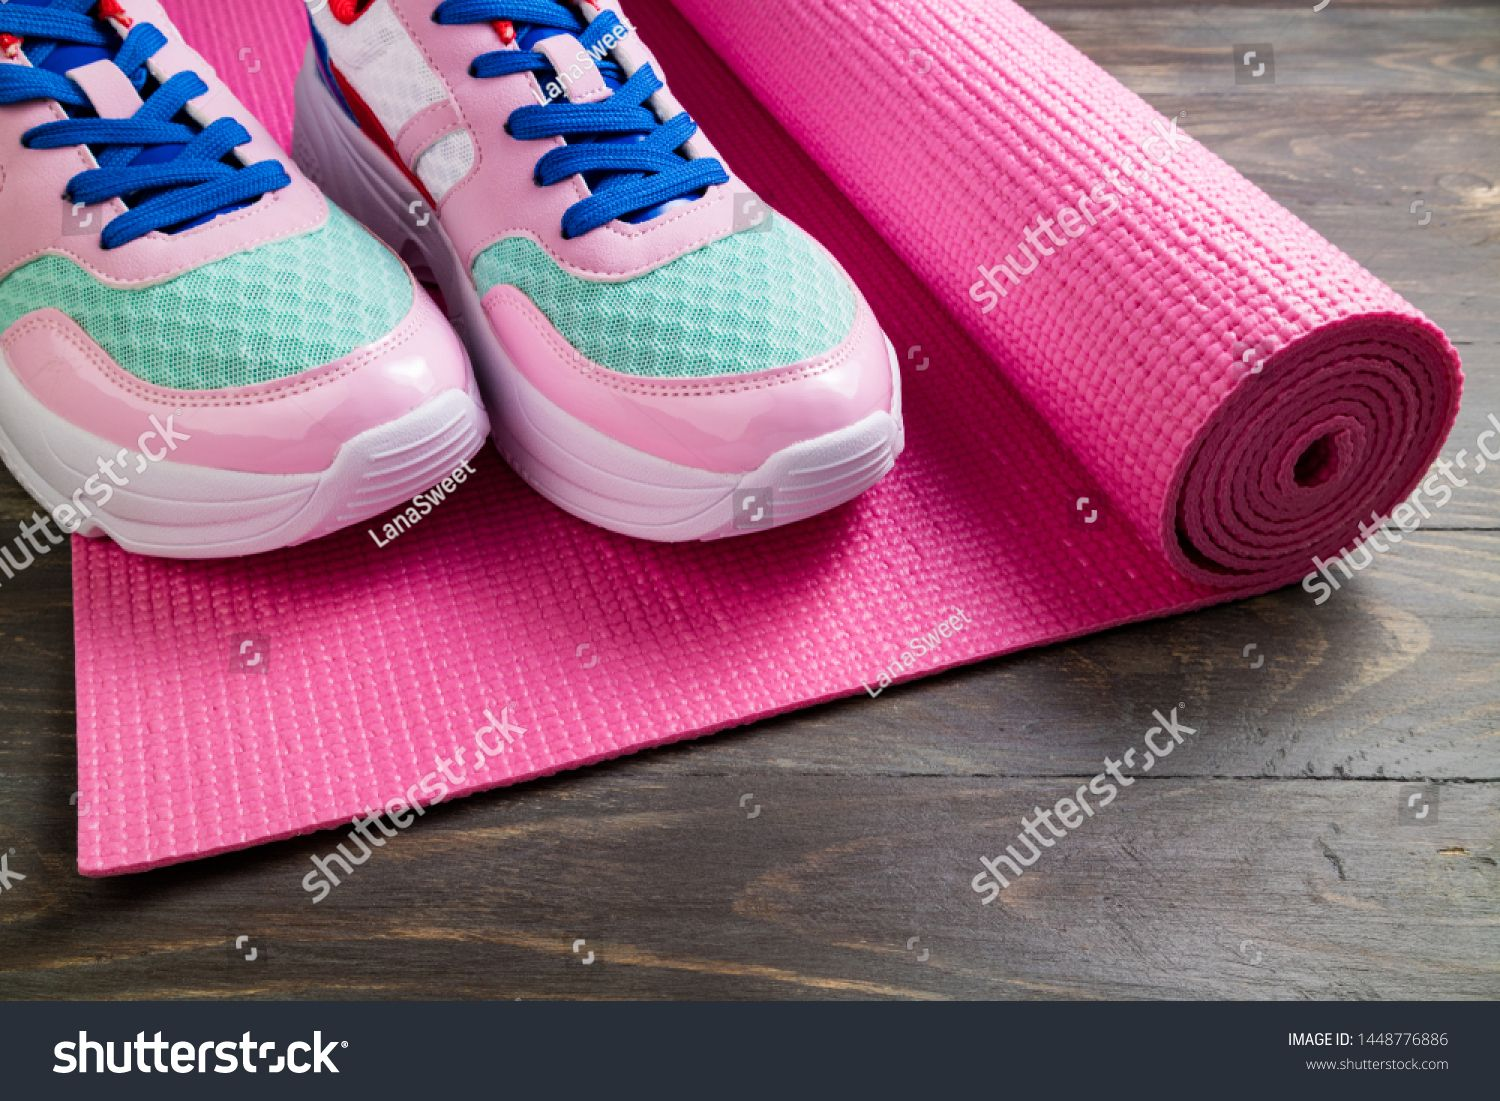 Download Pink Yoga Mat Sport Shoes Royalty Free Image Photo Sport Shoes Sports Equipment Air Max Sneakers